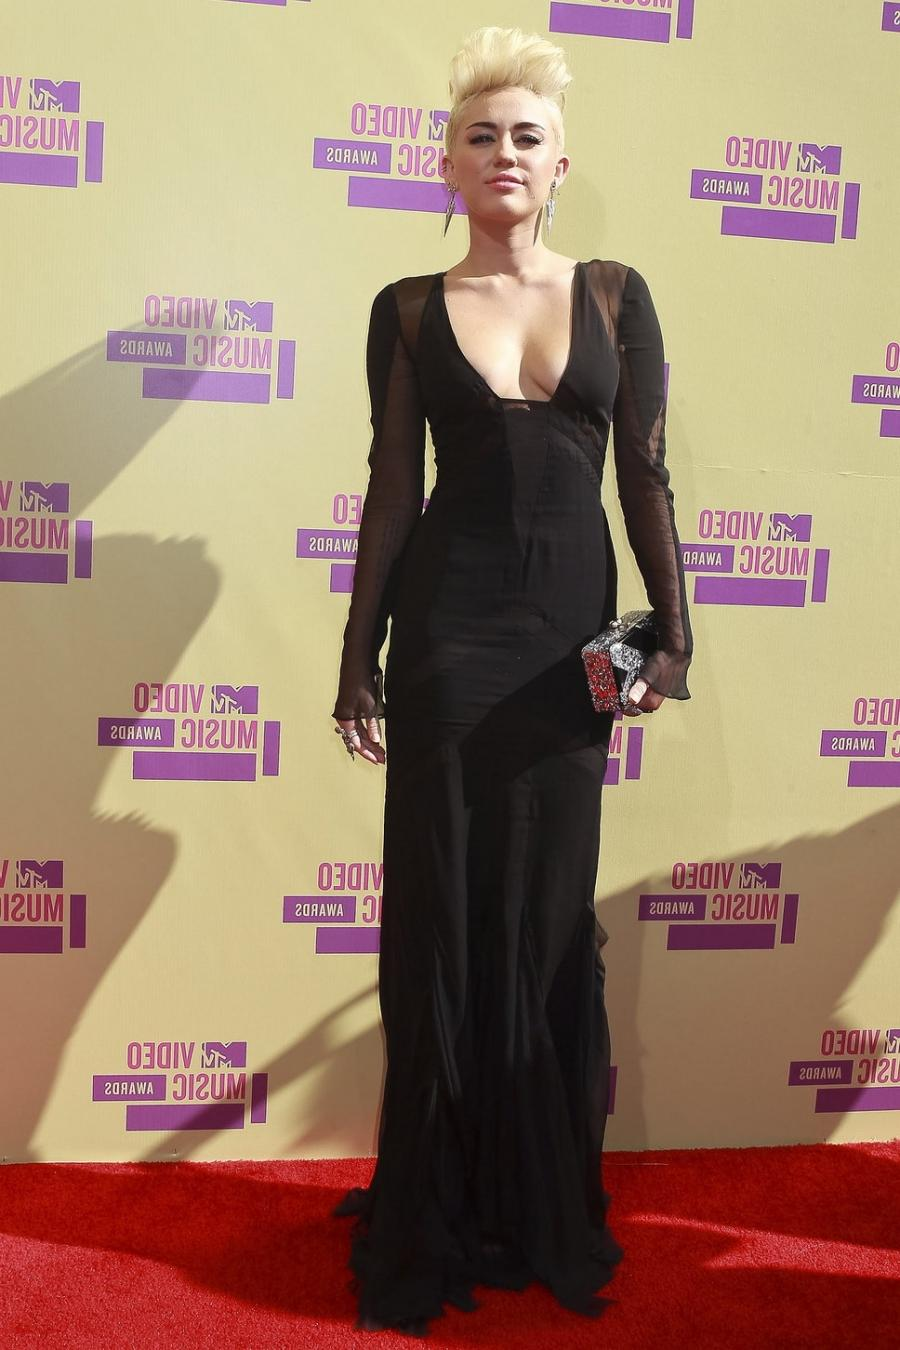 Miley Cyrus red carpet mtv video music awards 2012